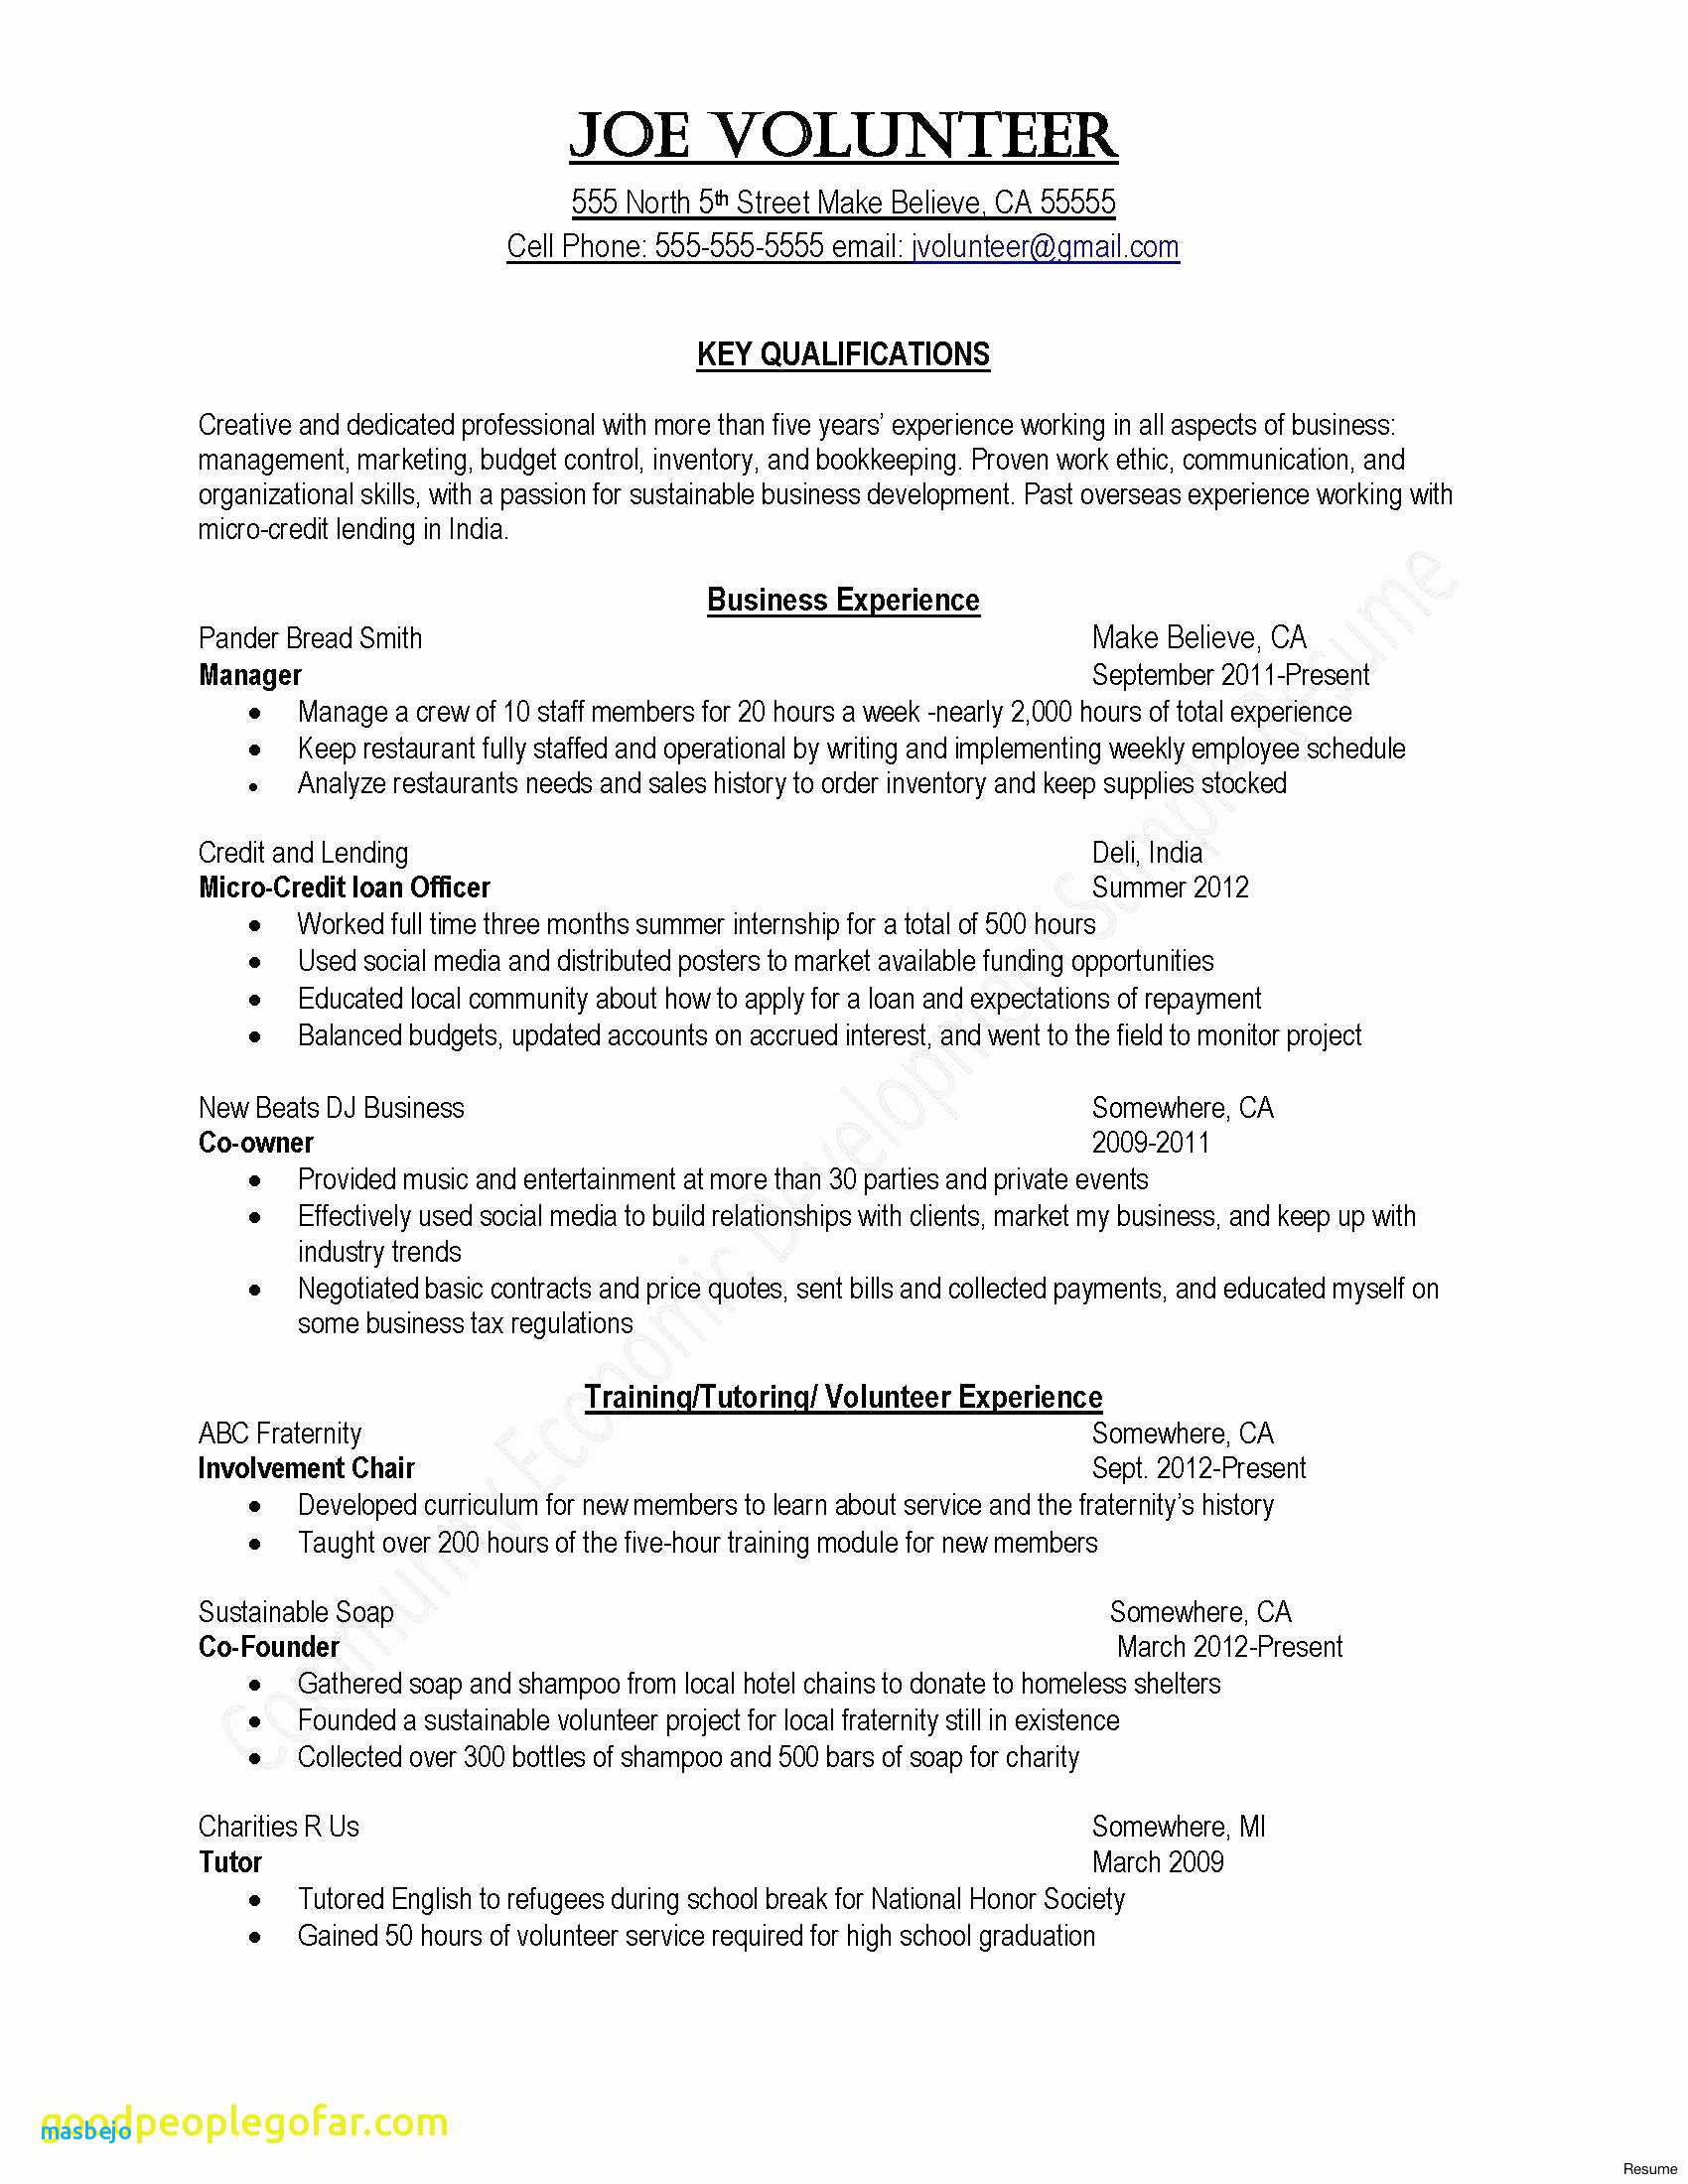 Resume Template for Police Officer - Police Ficer Resume Police Ficer Resume Templates Myacereporter